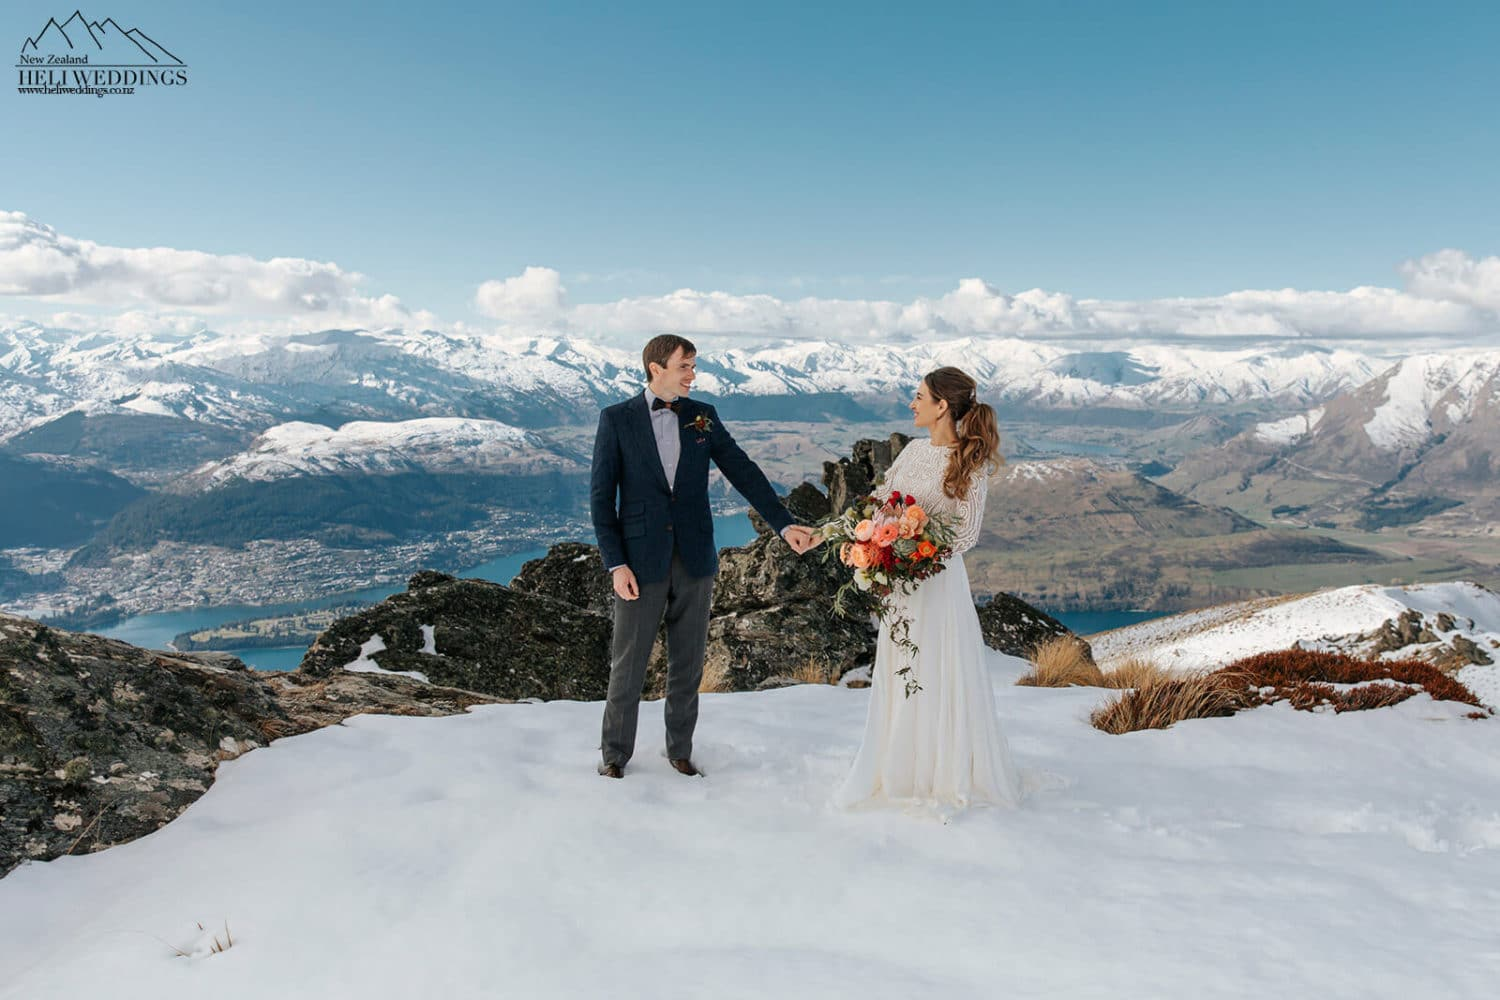 Elopement wedding in the snow above Queenstown